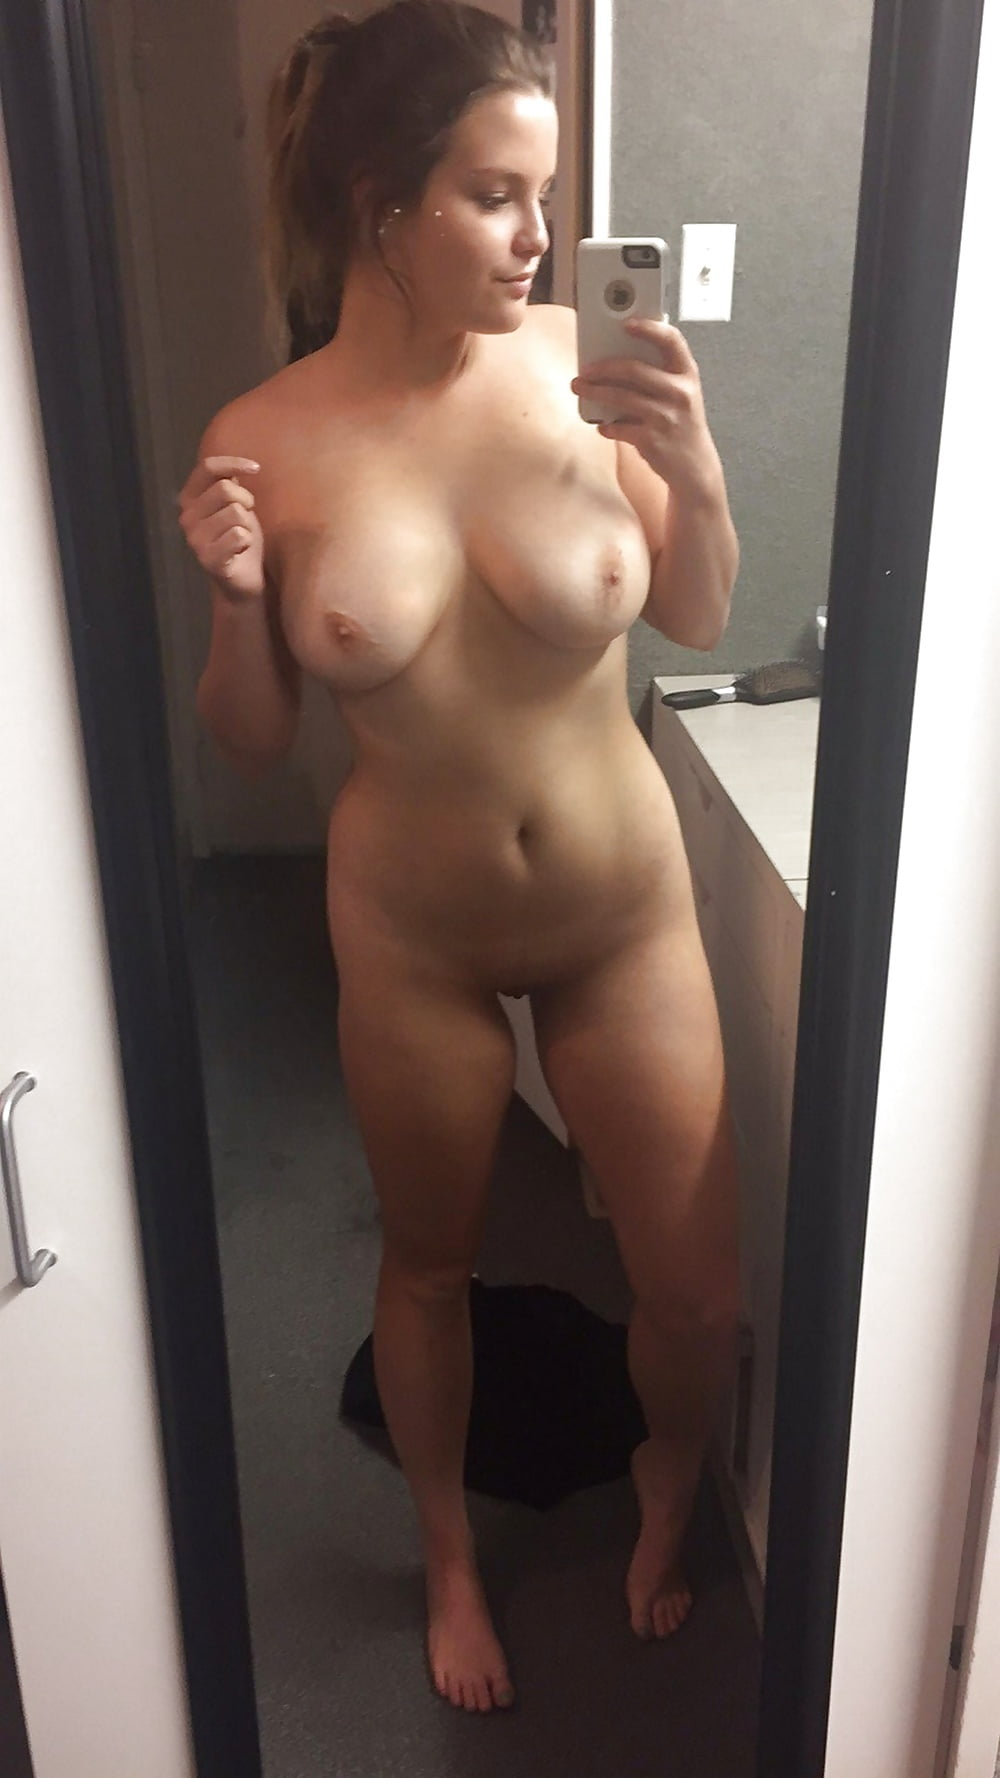 Betit naked girls taking pictures in the mirror mature orgasm tattoo